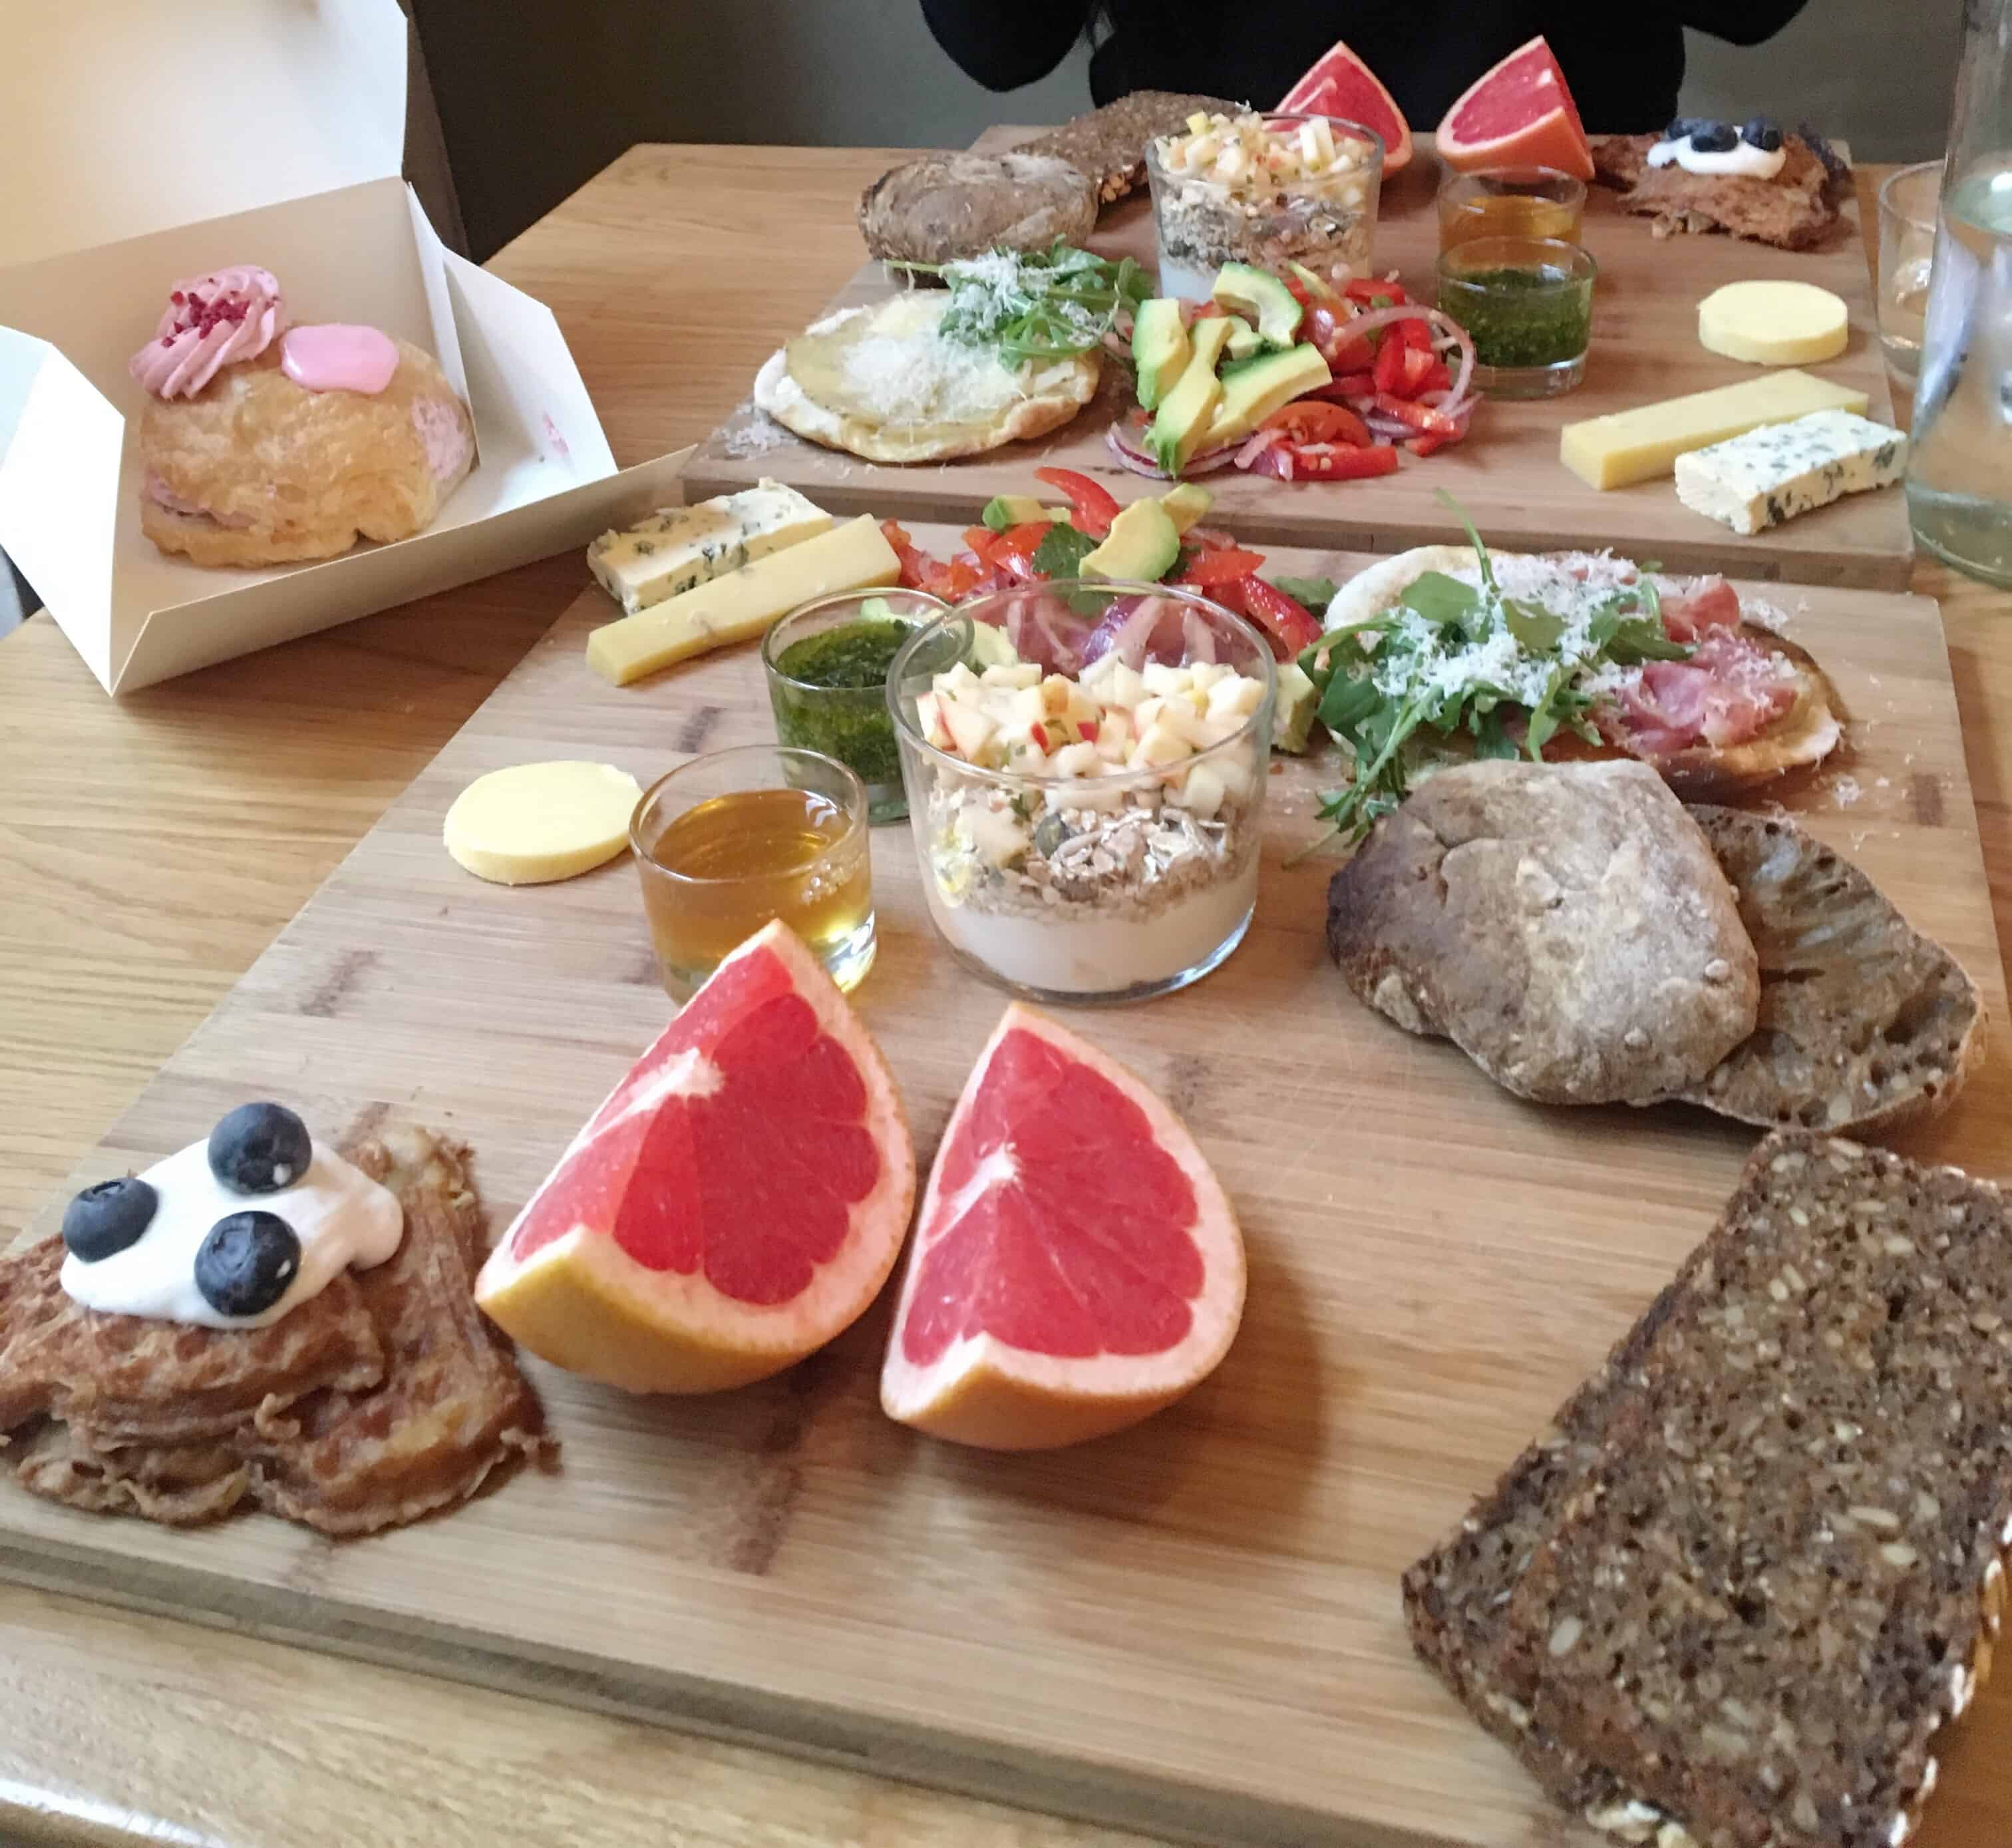 Brunch in Copenhagen, Denmark consists of a variety of small portions